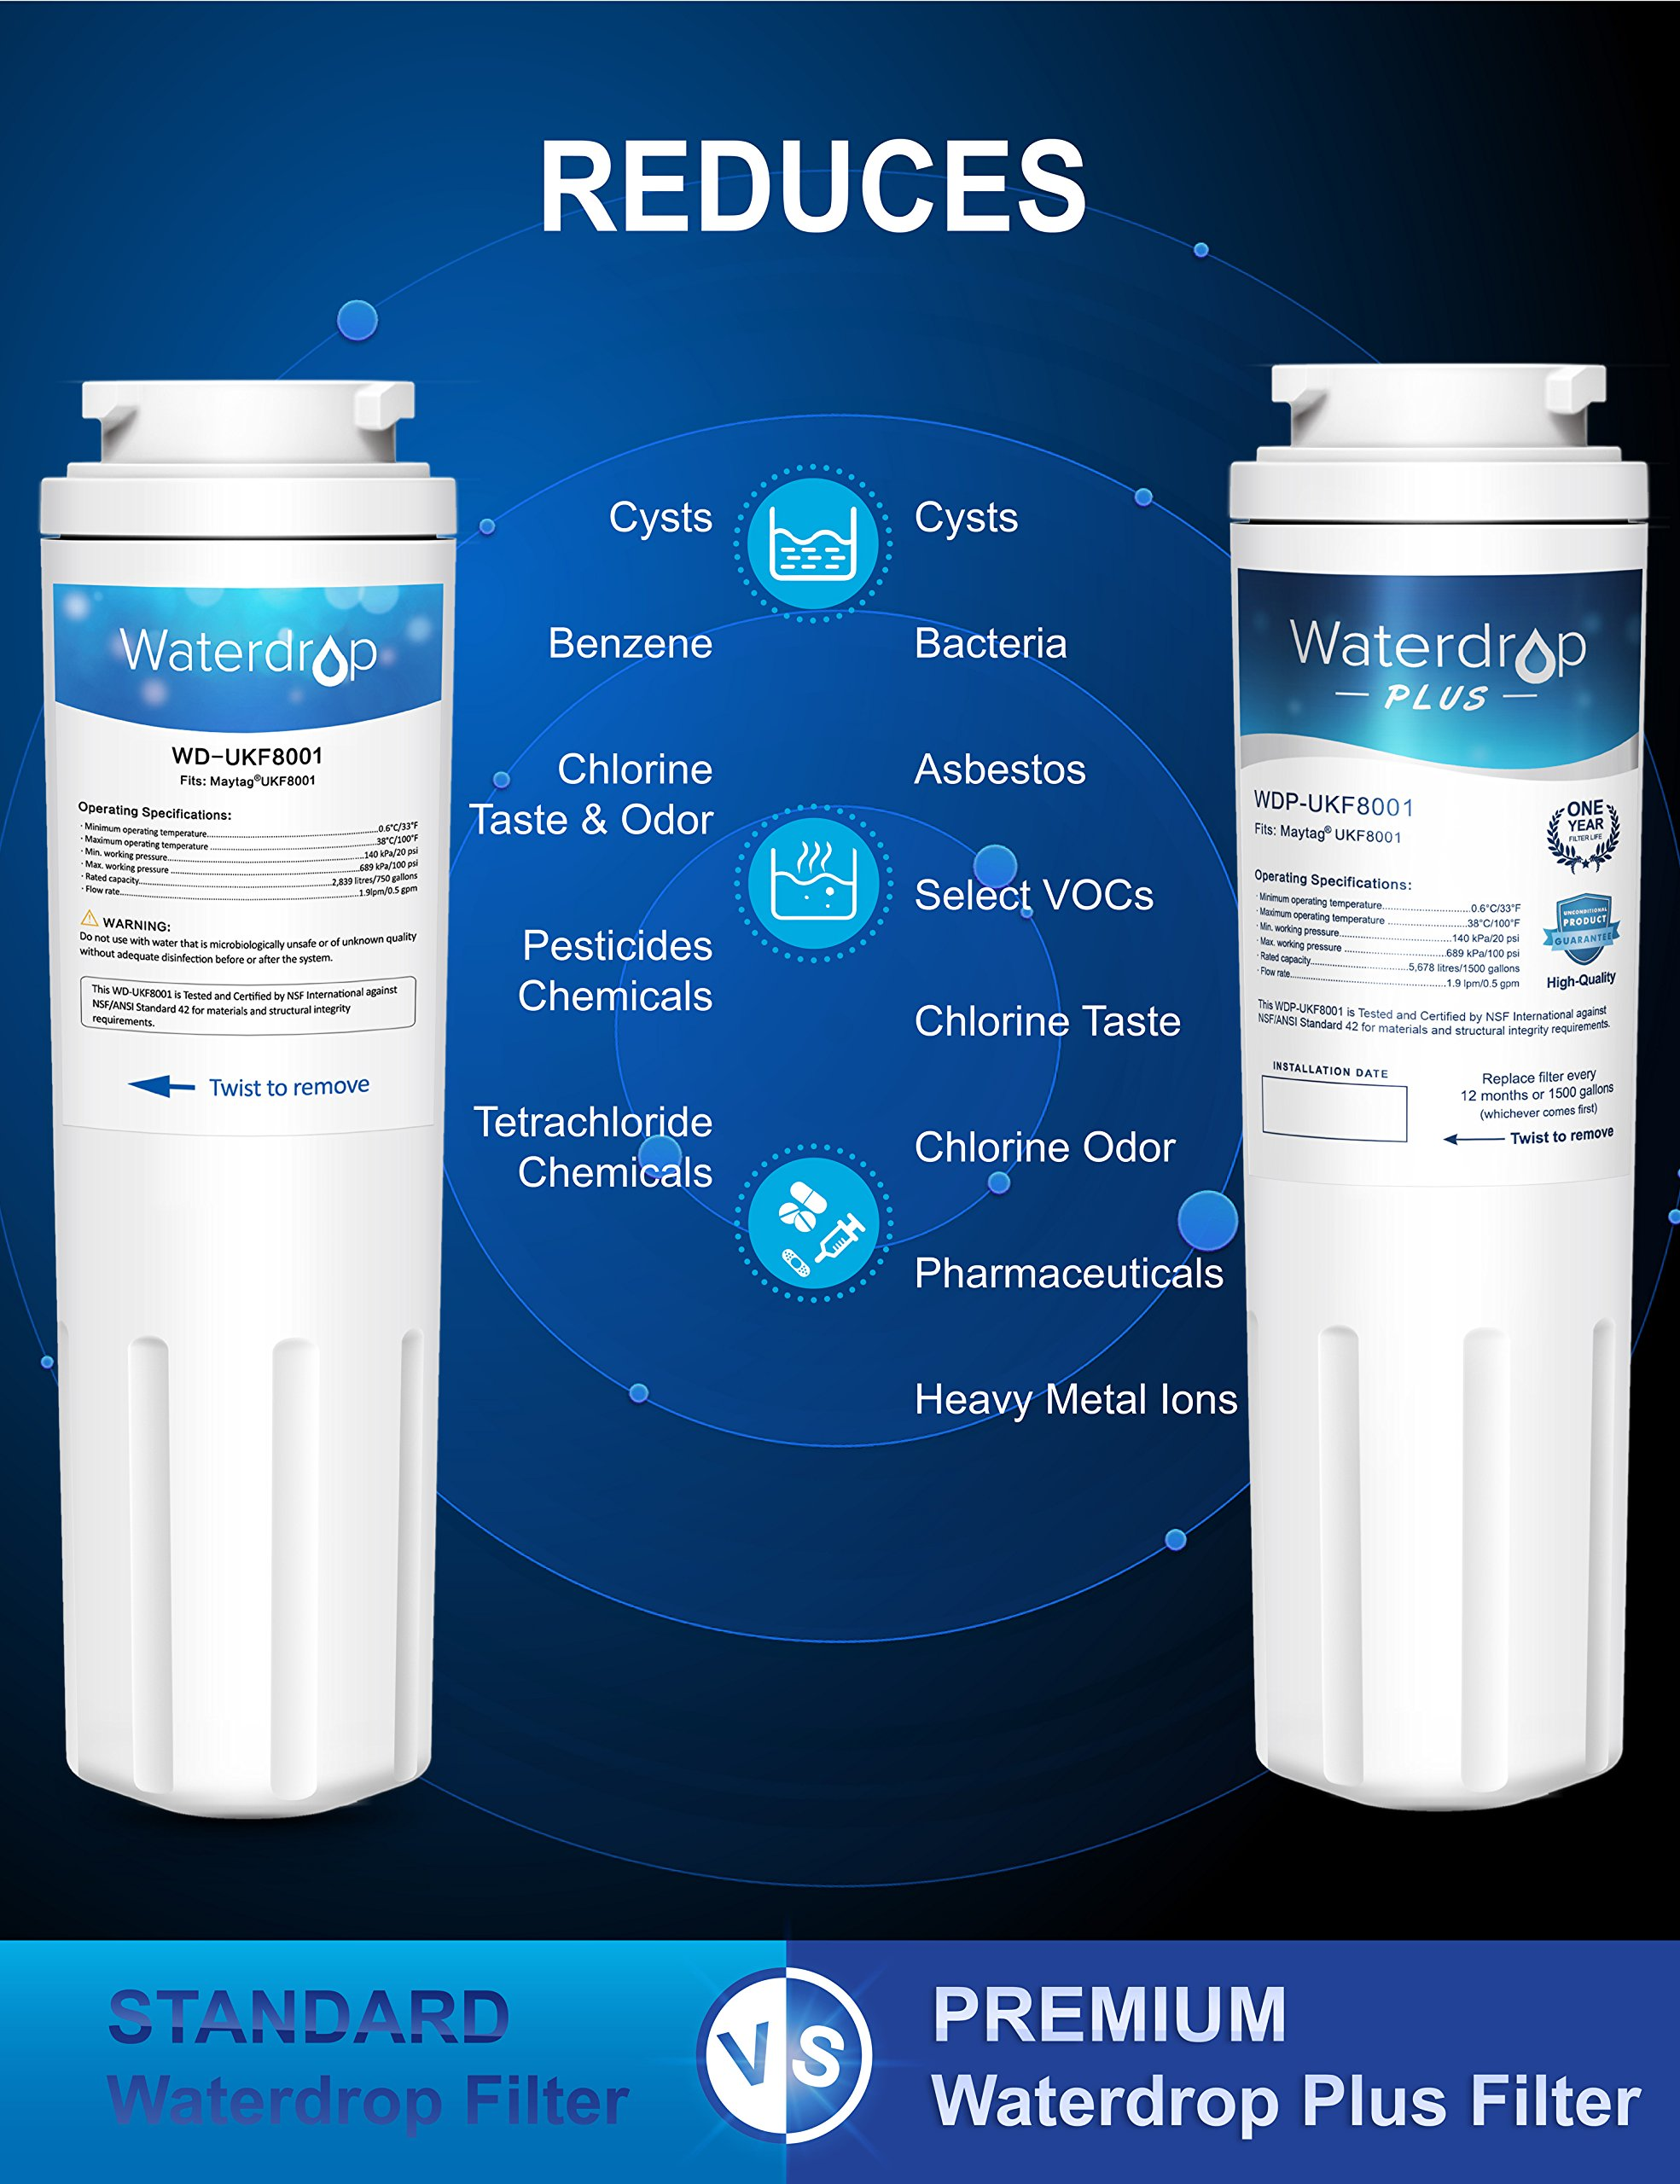 Waterdrop Plus UKF8001 Double Lifetime Refrigerator Water Filter Replacement for Maytag UKF8001, UKF8001AXX, UKF8001P, Whirlpool 4396395, 469006, EDR4RXD1, EveryDrop Filter 4, Puriclean II by Waterdrop (Image #3)